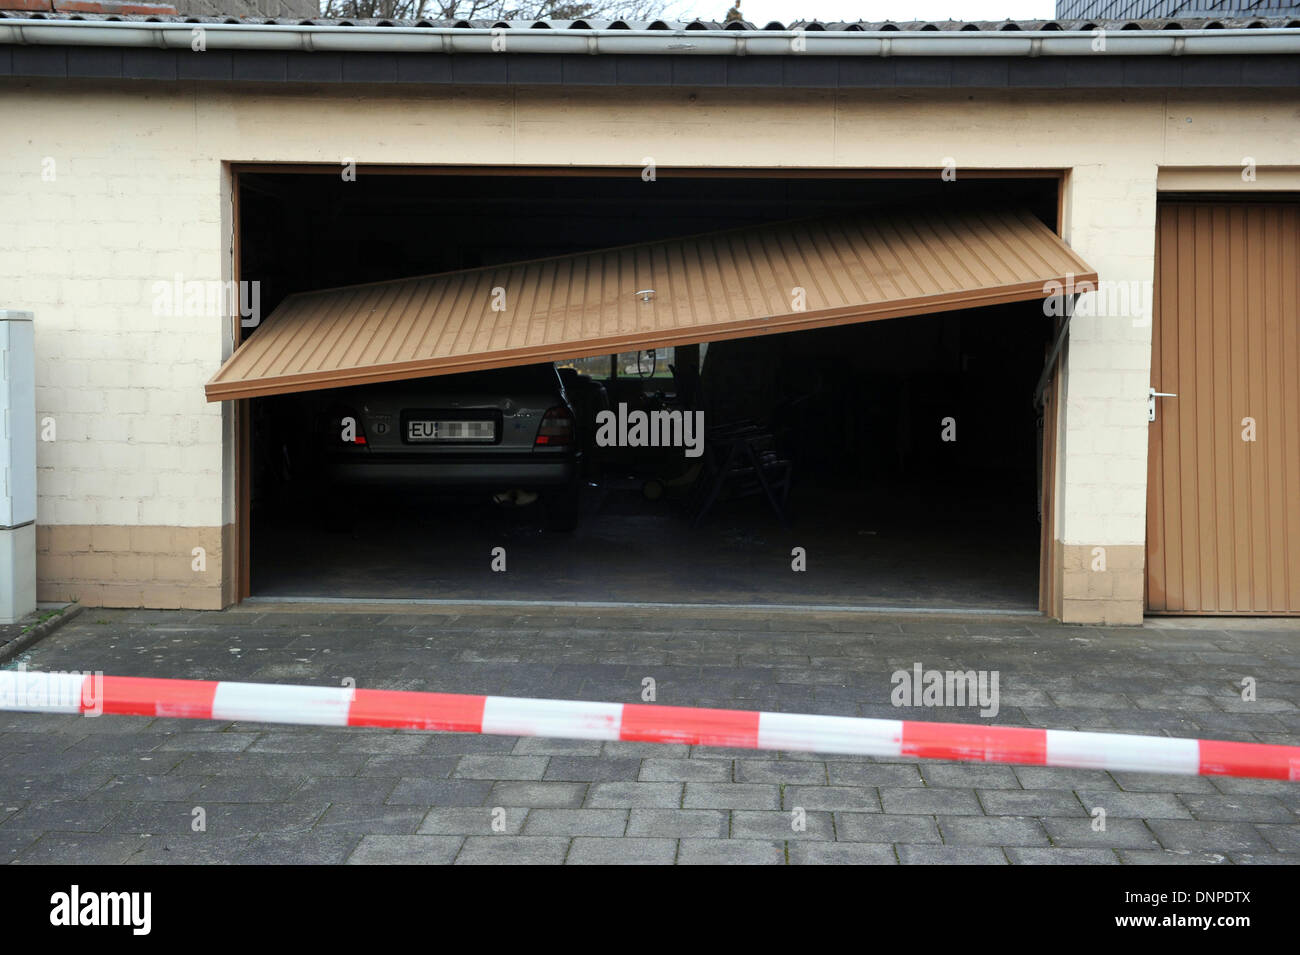 A garage door hangs damaged after the explosion of a World War II bomb in Euskirchen Germany 03 January 2014. A bomb from World War II & Euskirchen Germany. 03rd Jan 2014. A garage door hangs damaged ...